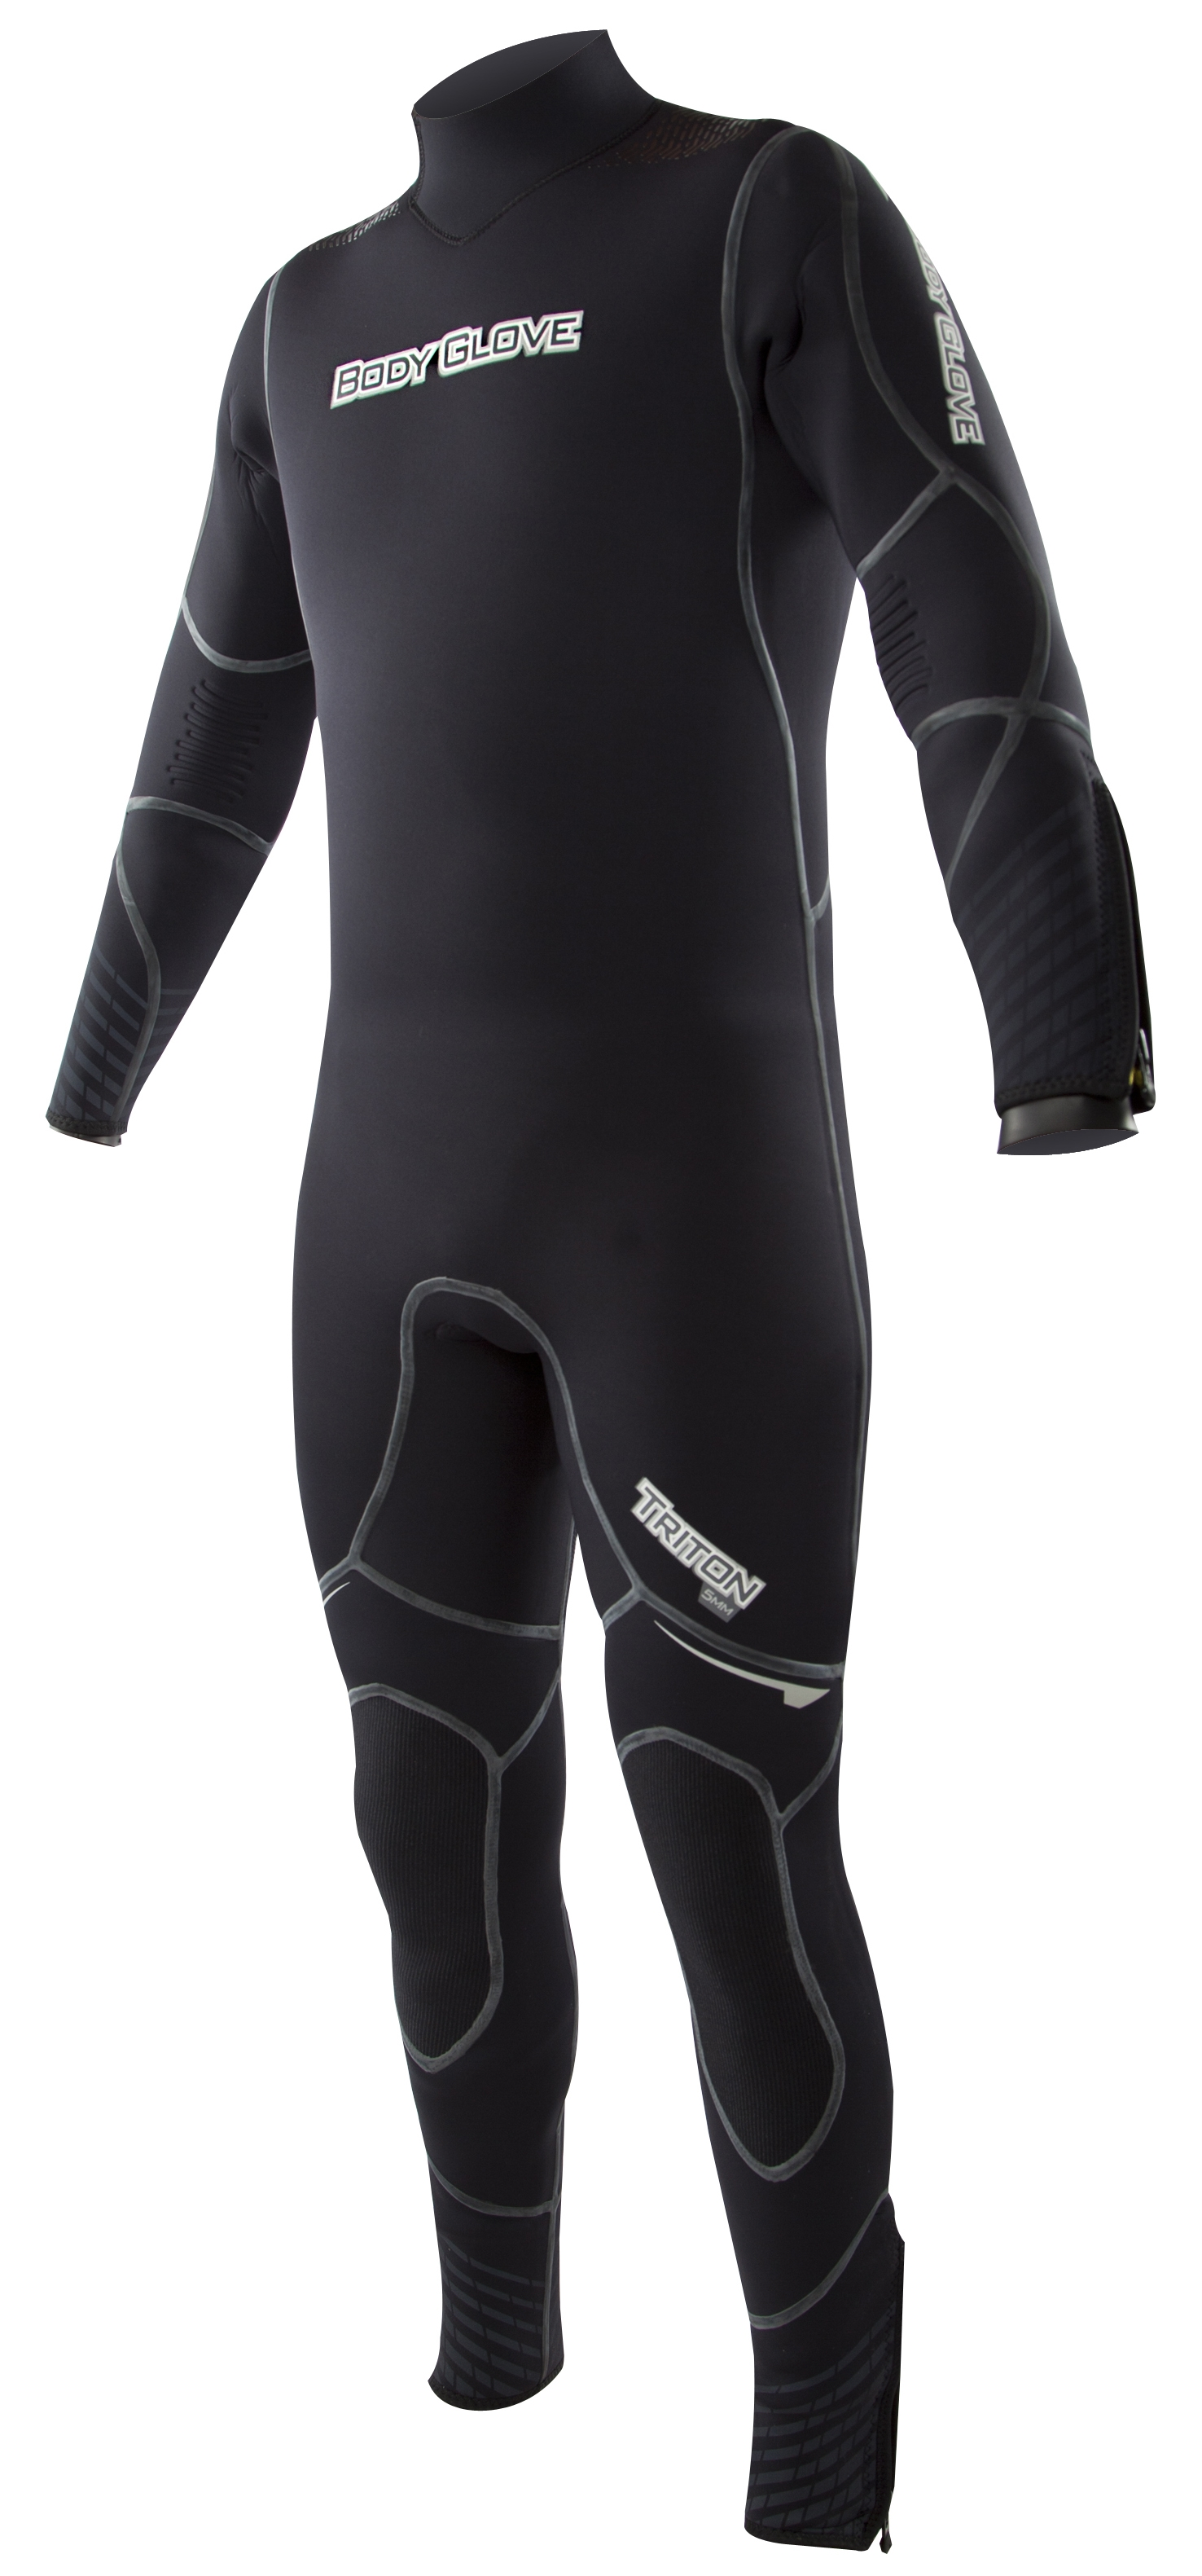 Body Glove Triton 7mm Men's Backzip Fullsuit -Black